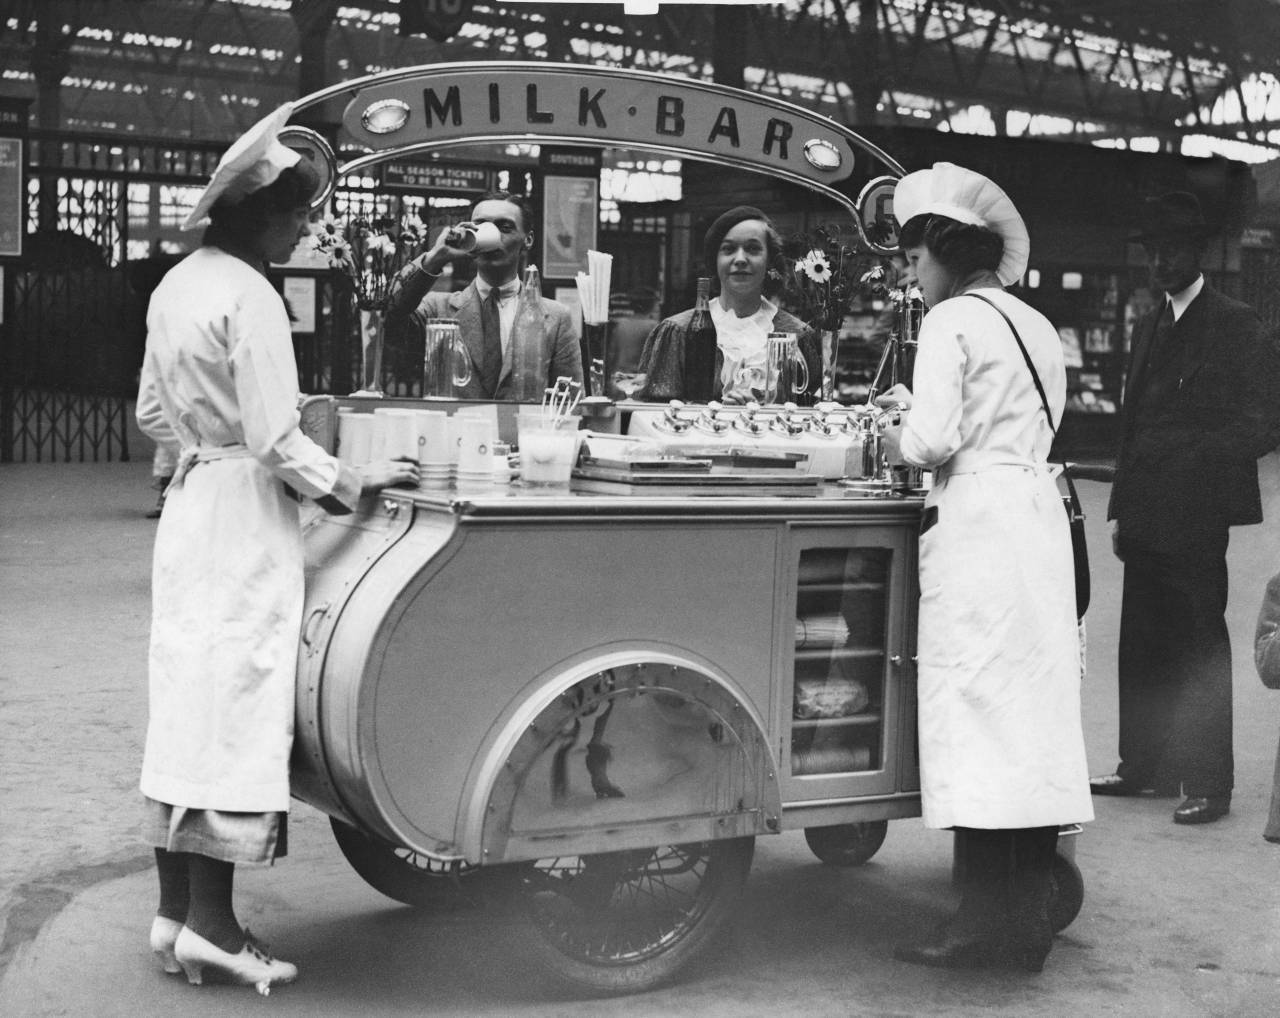 1st June 1937: Customers drinking at the portable milk bar which travels the platforms at Waterloo Railway Station. It is the first of its kind on any station in Great Britain. (Photo by Fox Photos/Getty Images)